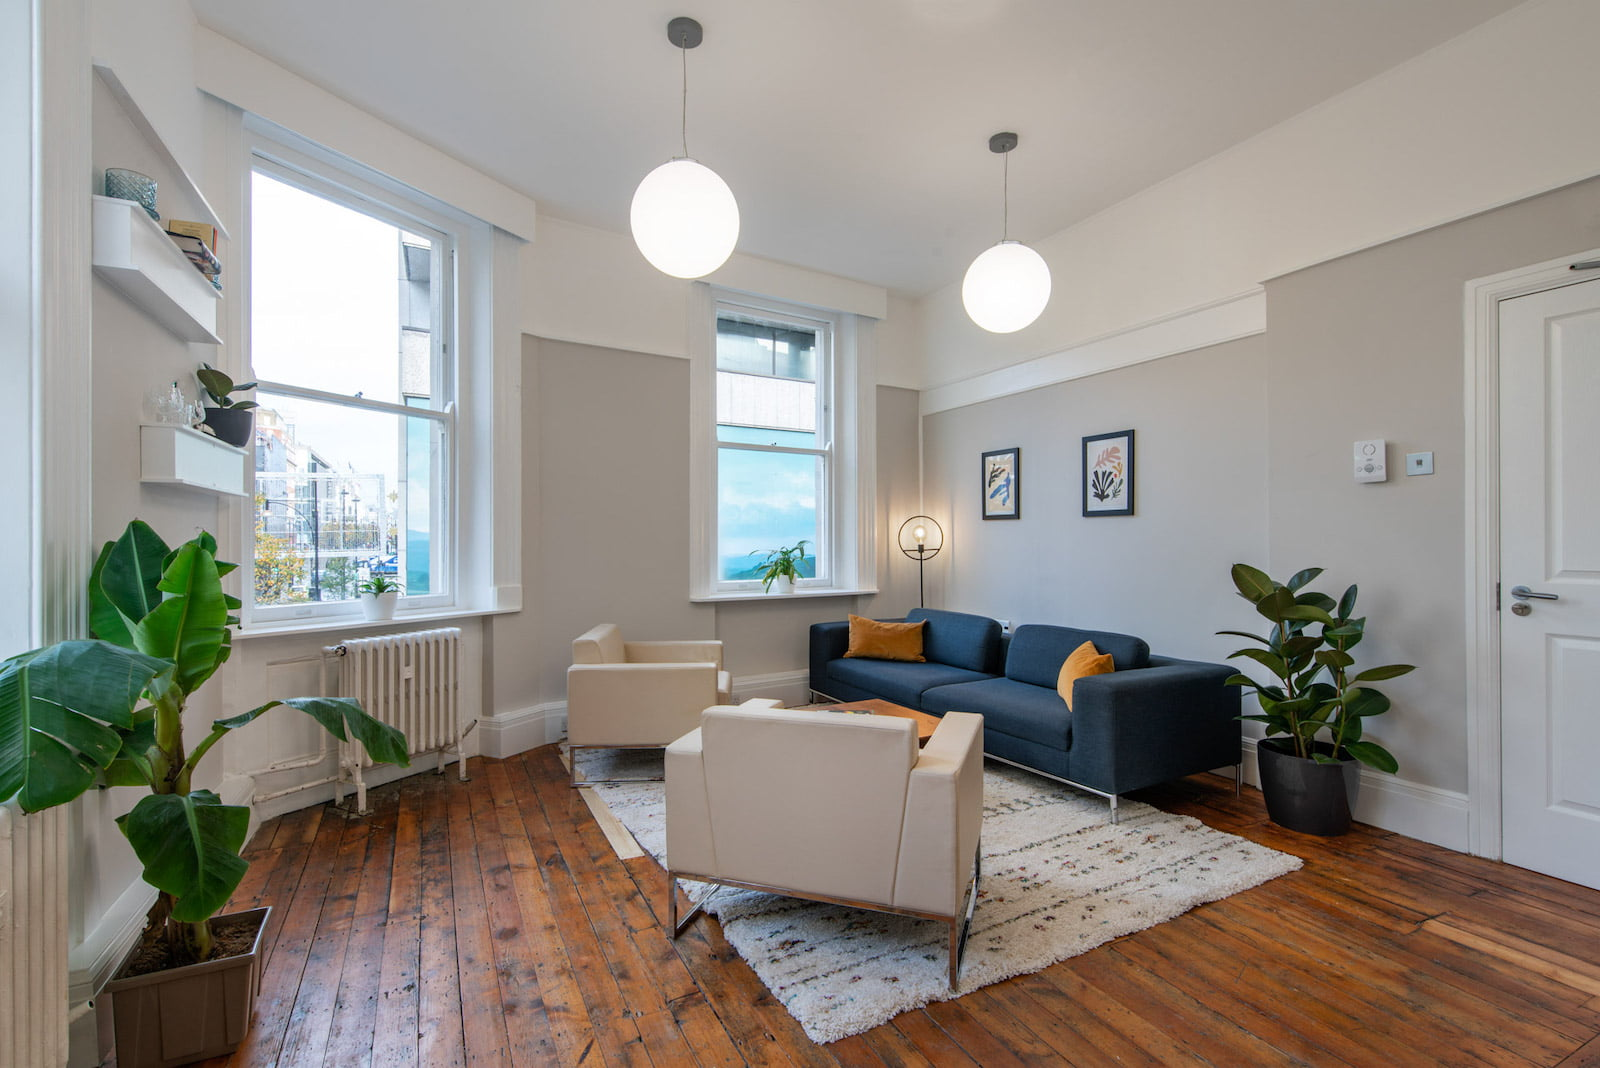 Finding startup office space in Mayfair and The West End